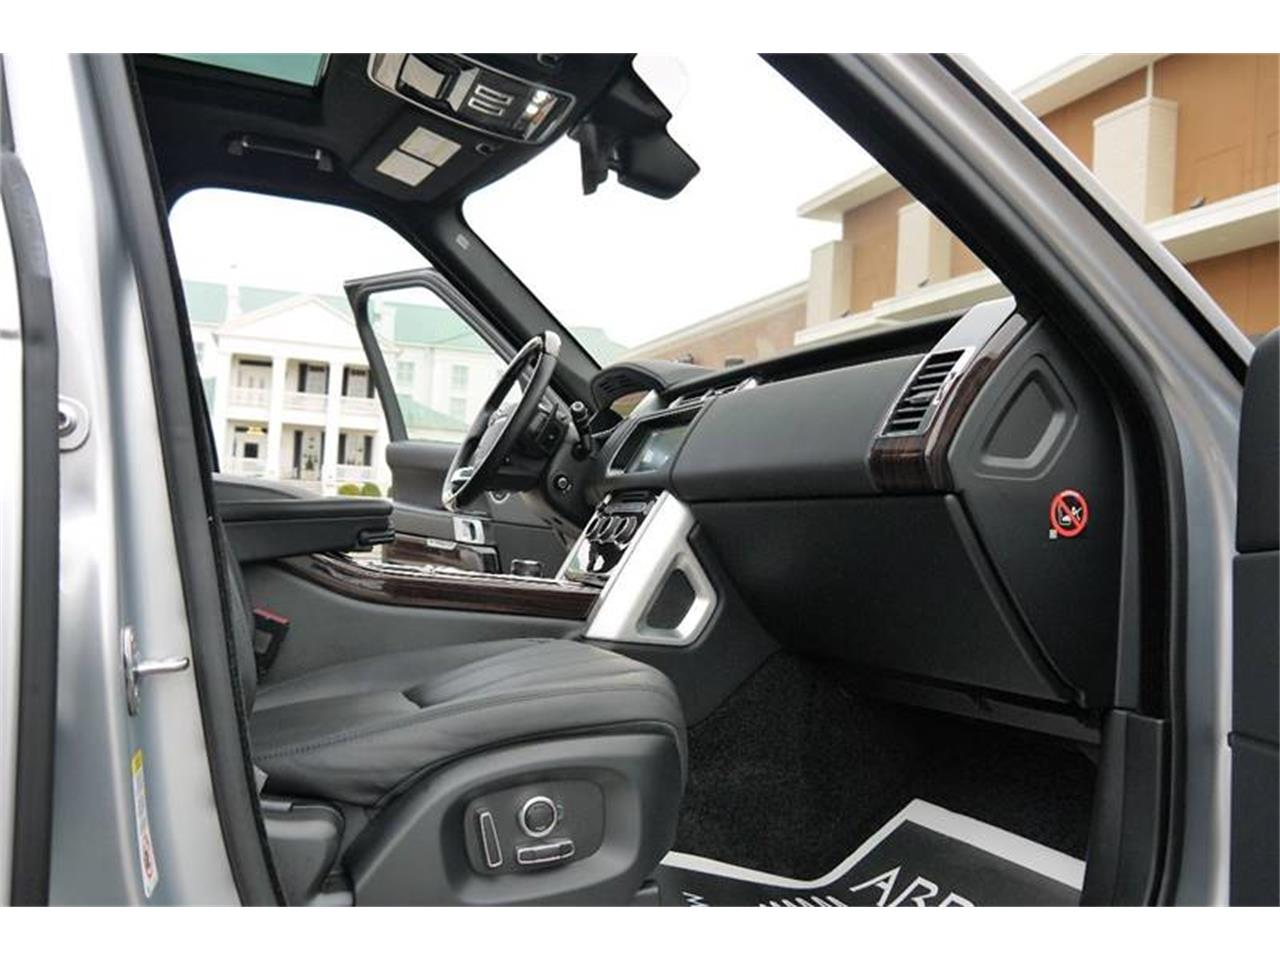 Large Picture of 2017 Range Rover located in Brentwood Tennessee Auction Vehicle - MODC